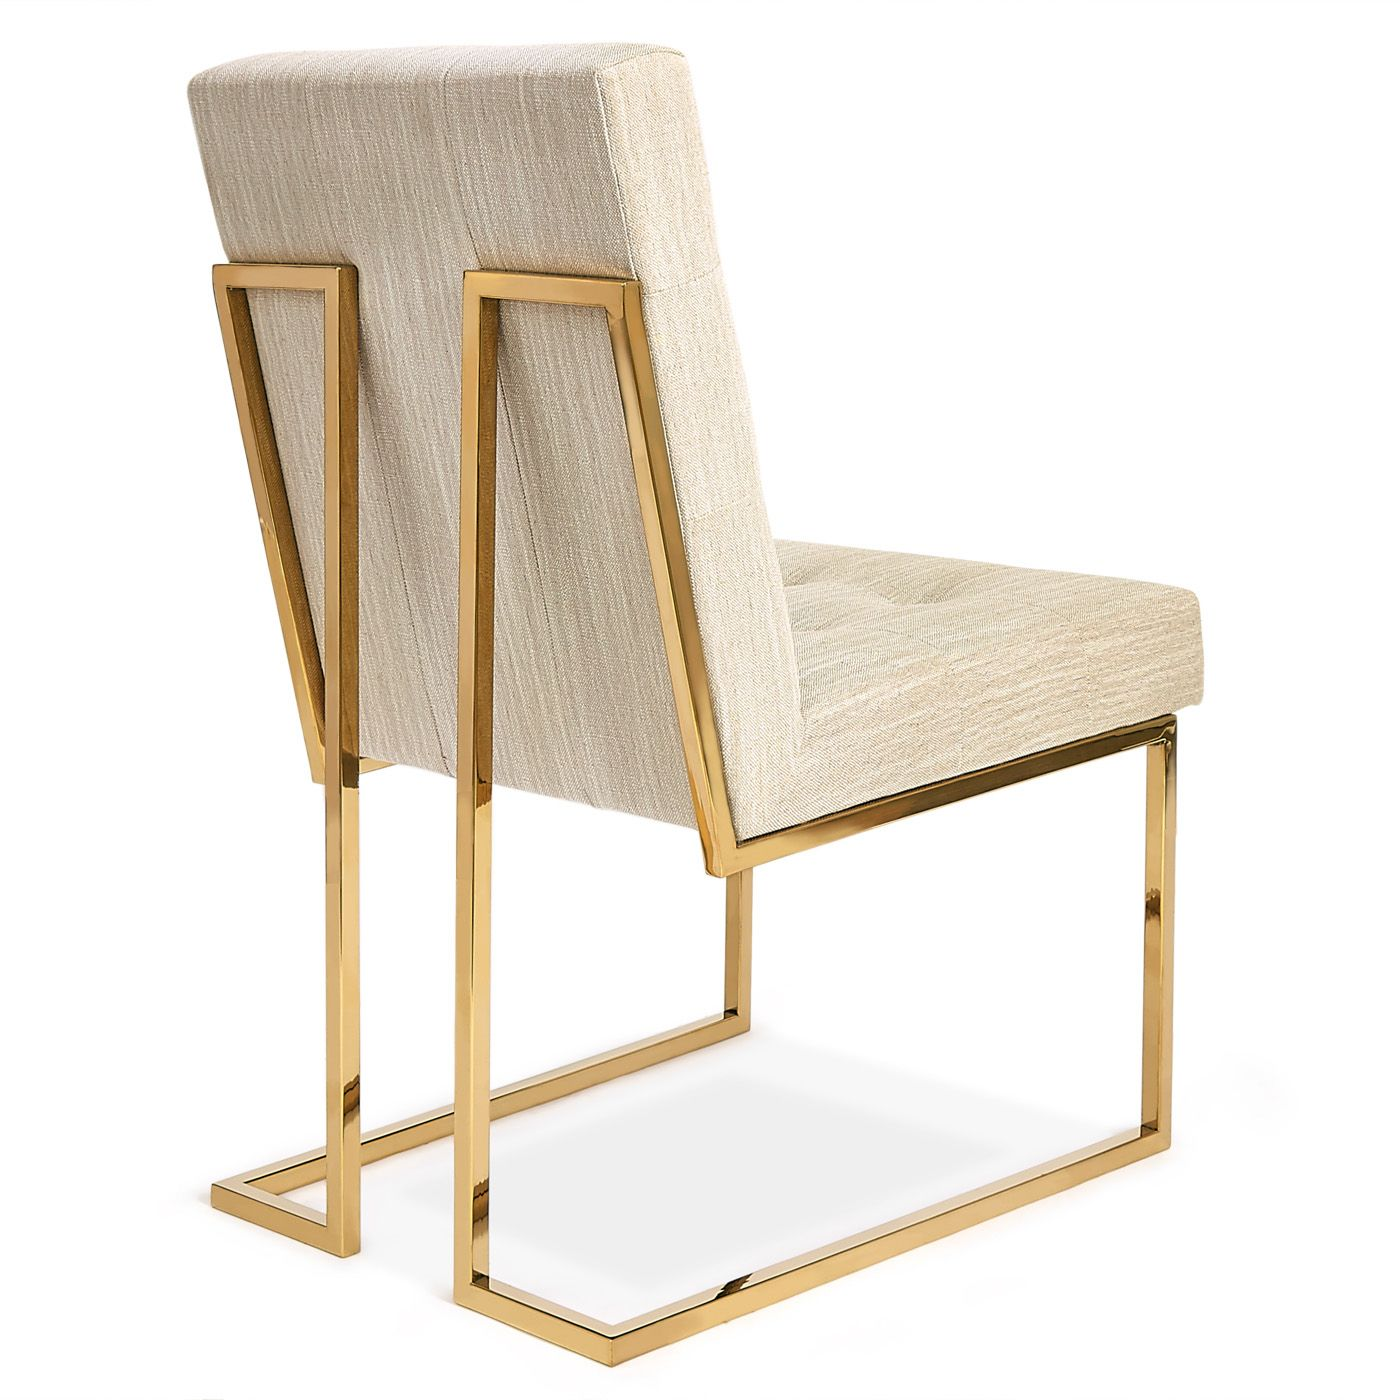 Jonathan Adler Goldfinger Dining Chair is part of Rustic dining furniture - Minimalist Comfort Pared down geometry in polished brass meets swanky Rialto Navy velvet  in our Goldfinger Collection  A little bit '70s, a lot today  Gol